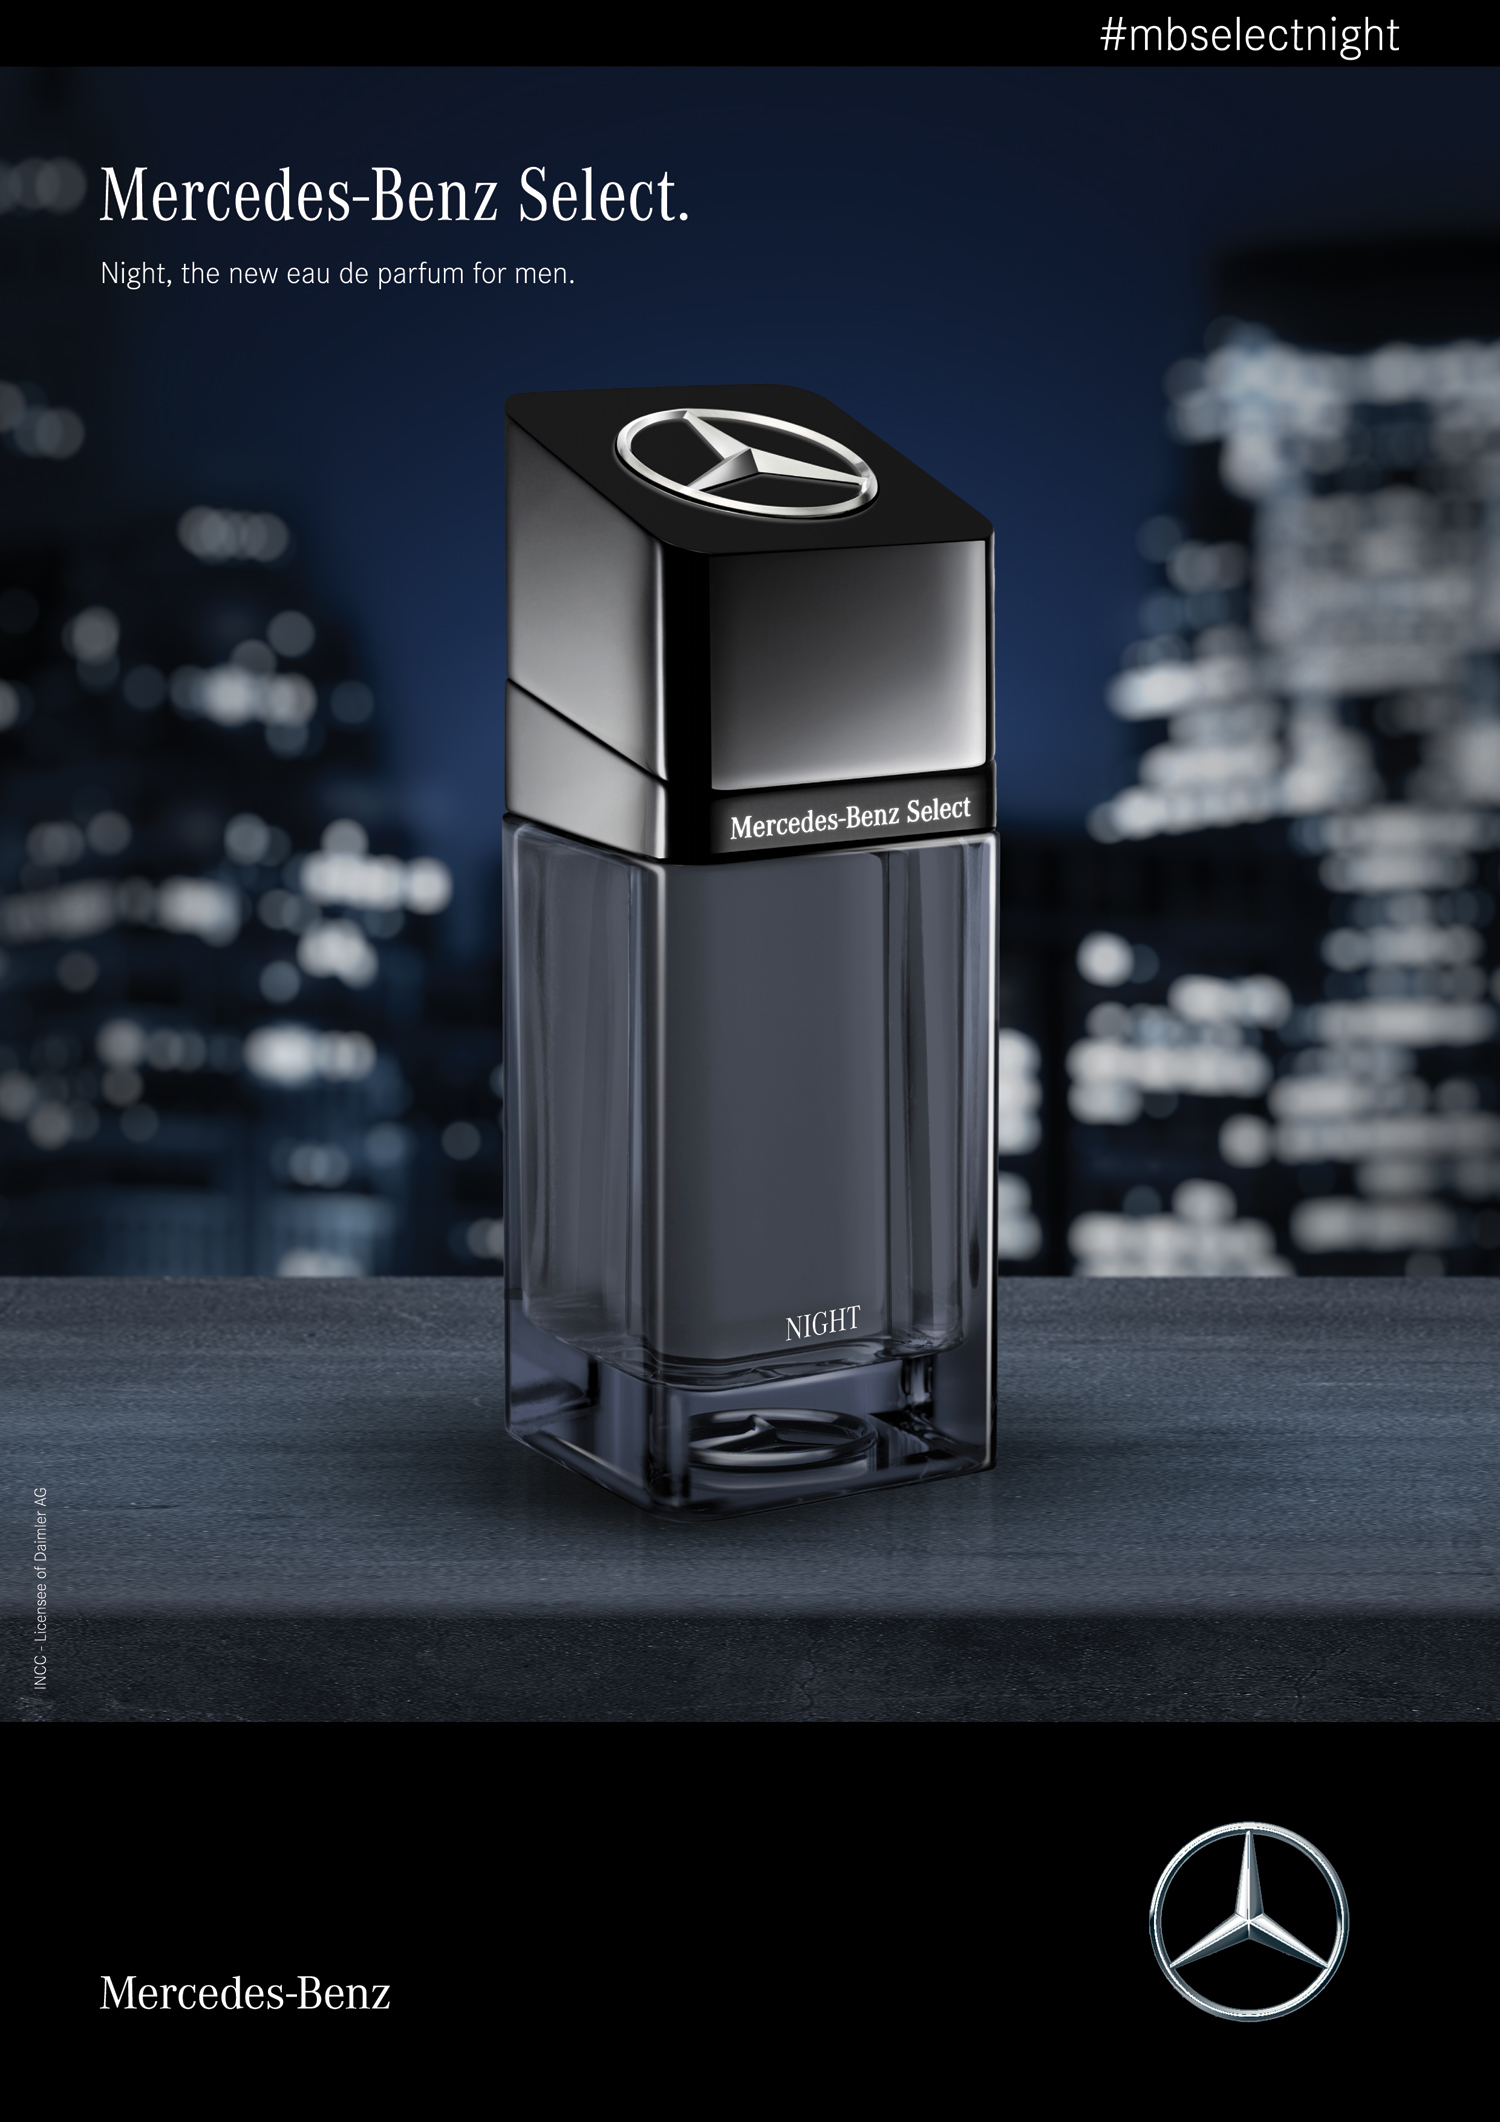 Tfwa 2018 Prepremiere Mercedes Benz Select Night New Fragrances Parfum Zara For Him Silver Collection Man